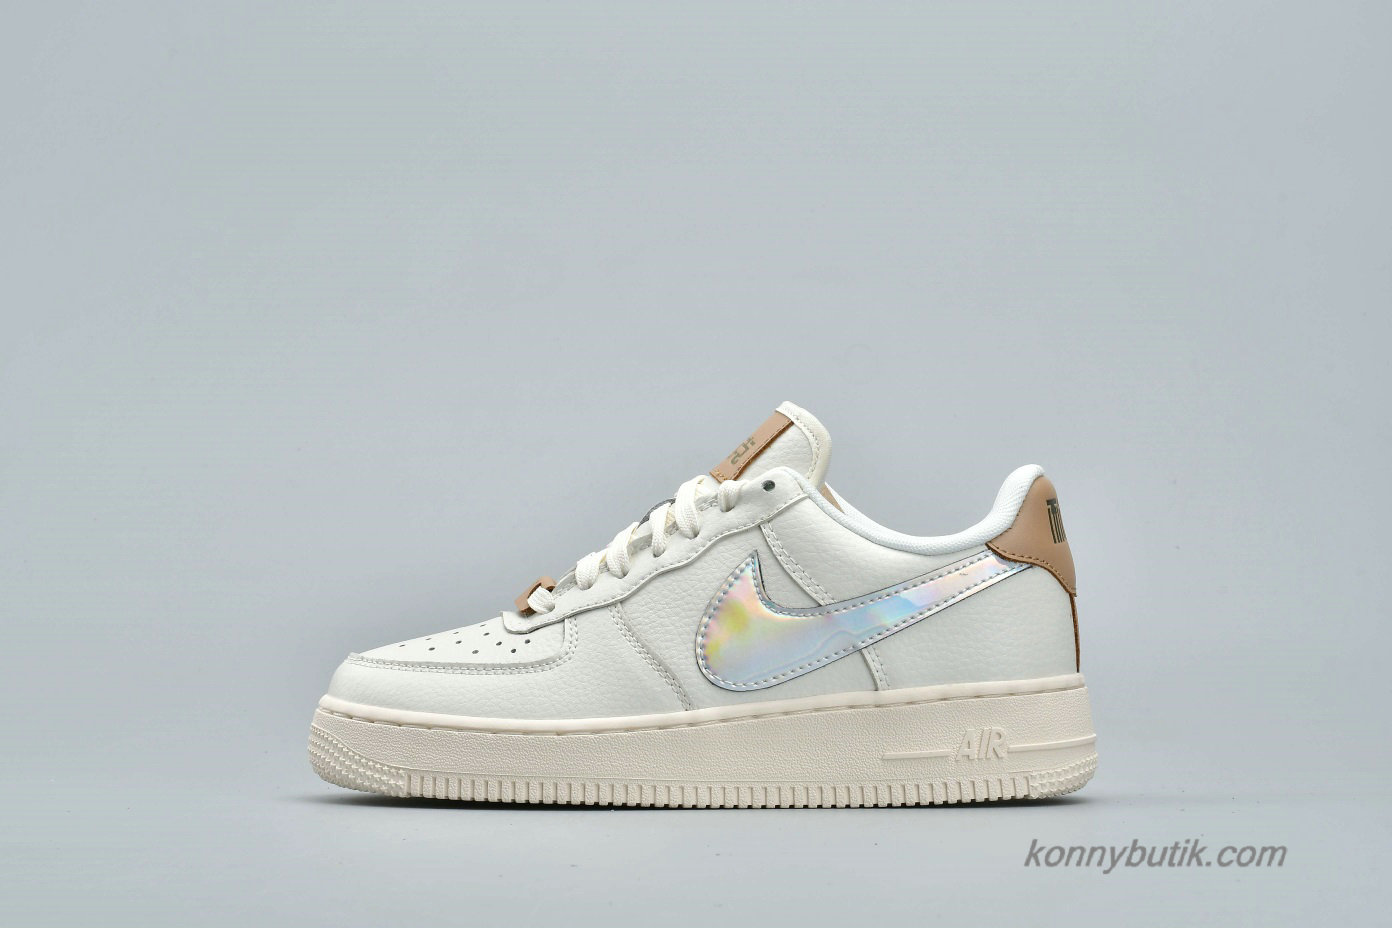 Nike Air Force 1 Low Unisex Sko Off-White / Sølv / Brun (AV2038-100)